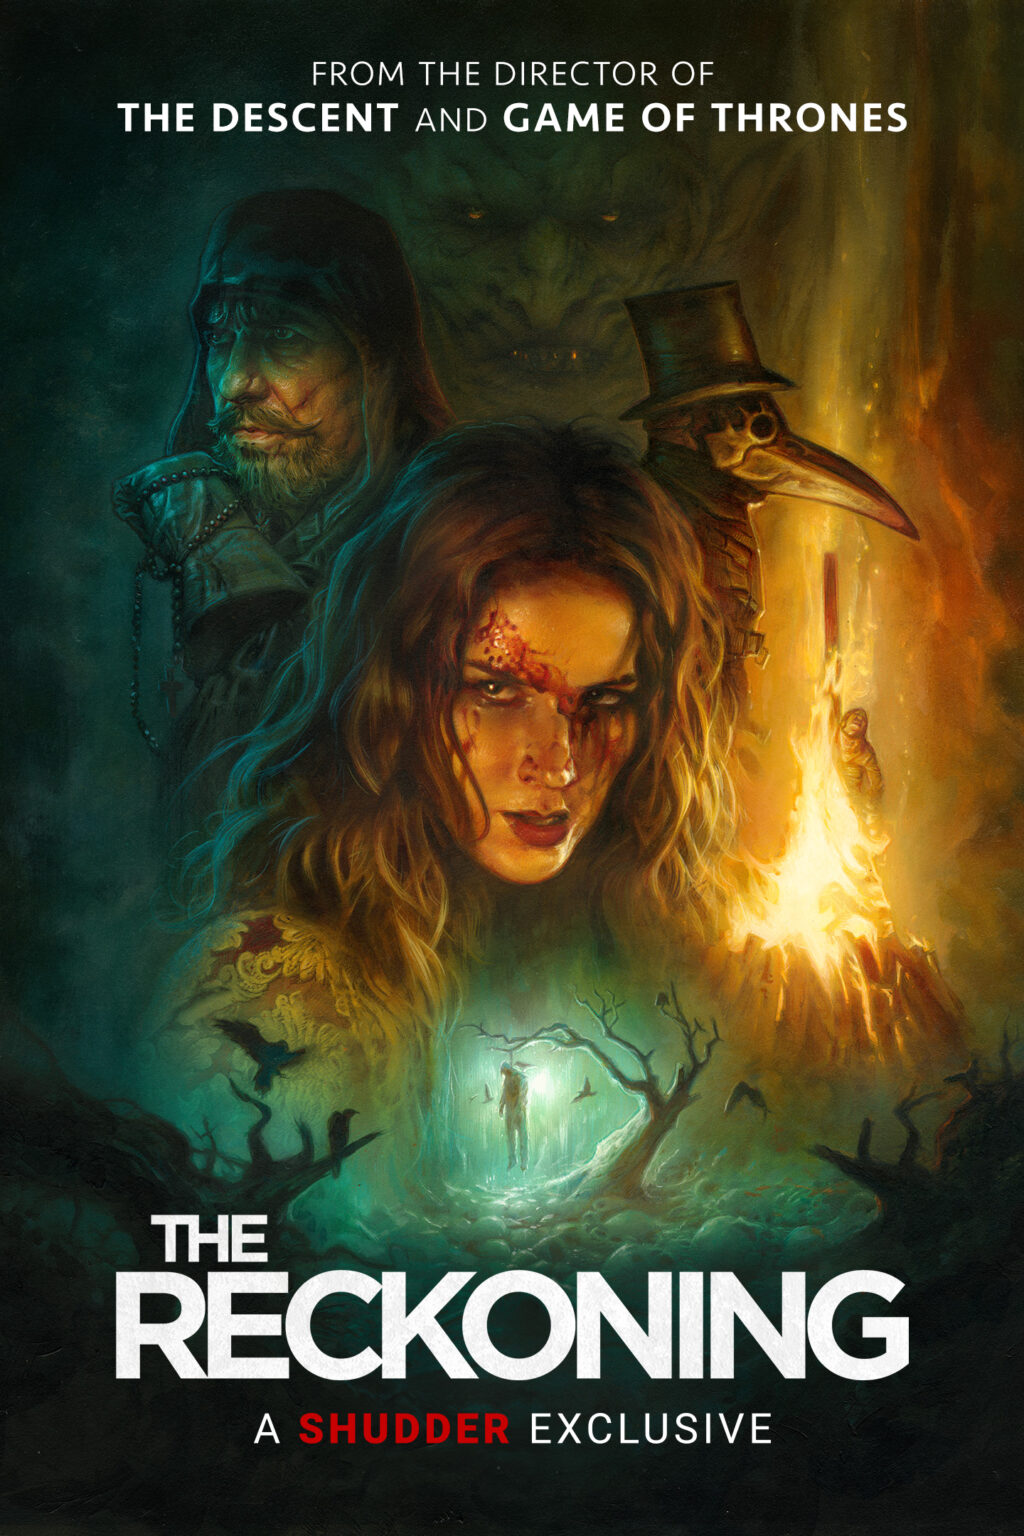 The Reckoning YT PosterArt 1440x2160 1024x1536 - THE RECKONING Will Now Premiere on Shudder on May 13th